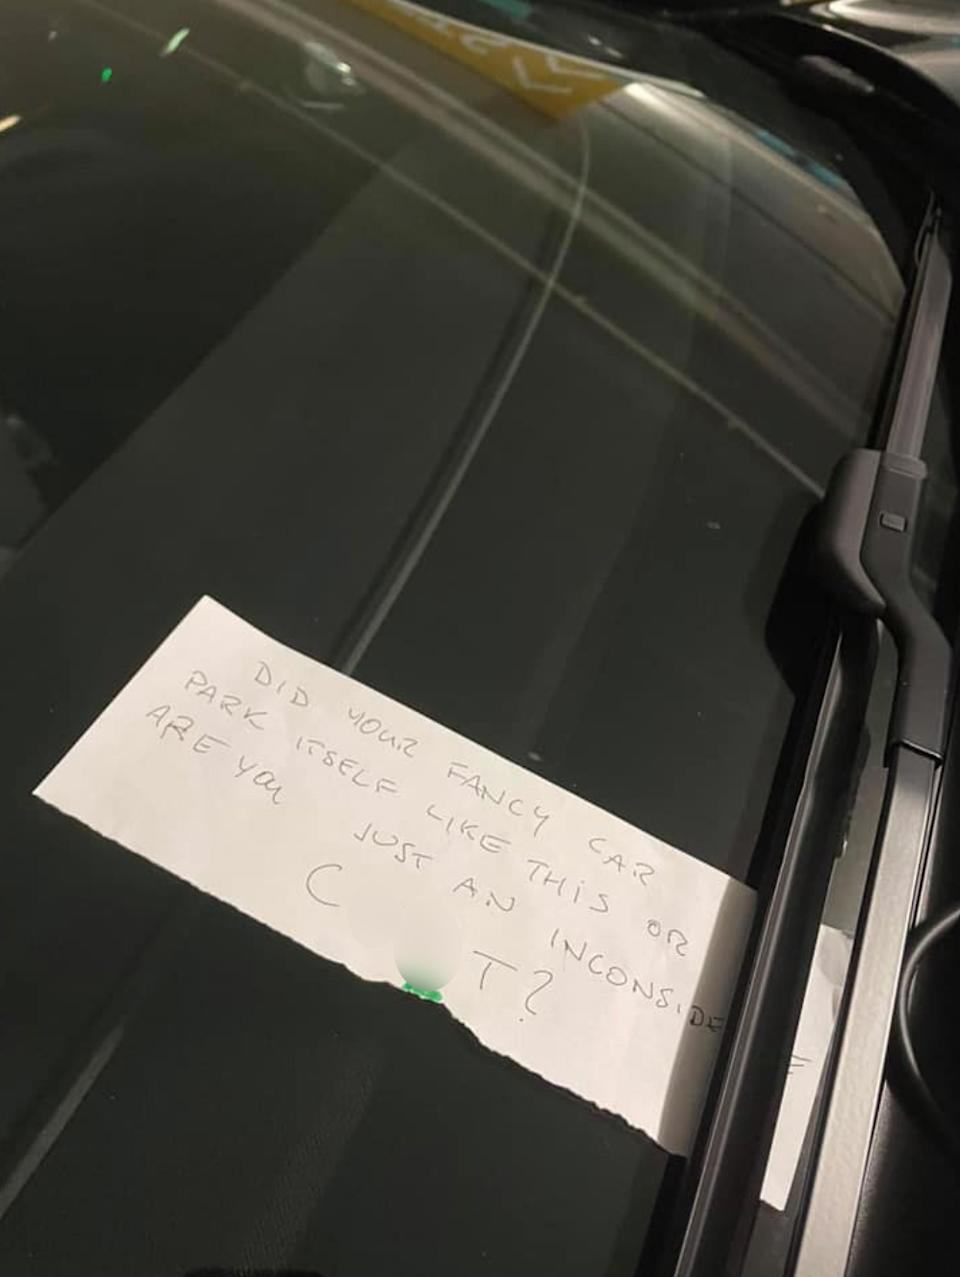 An unimpressed passerby left this nasty note for the driver of the Tesla. Source: Facebook